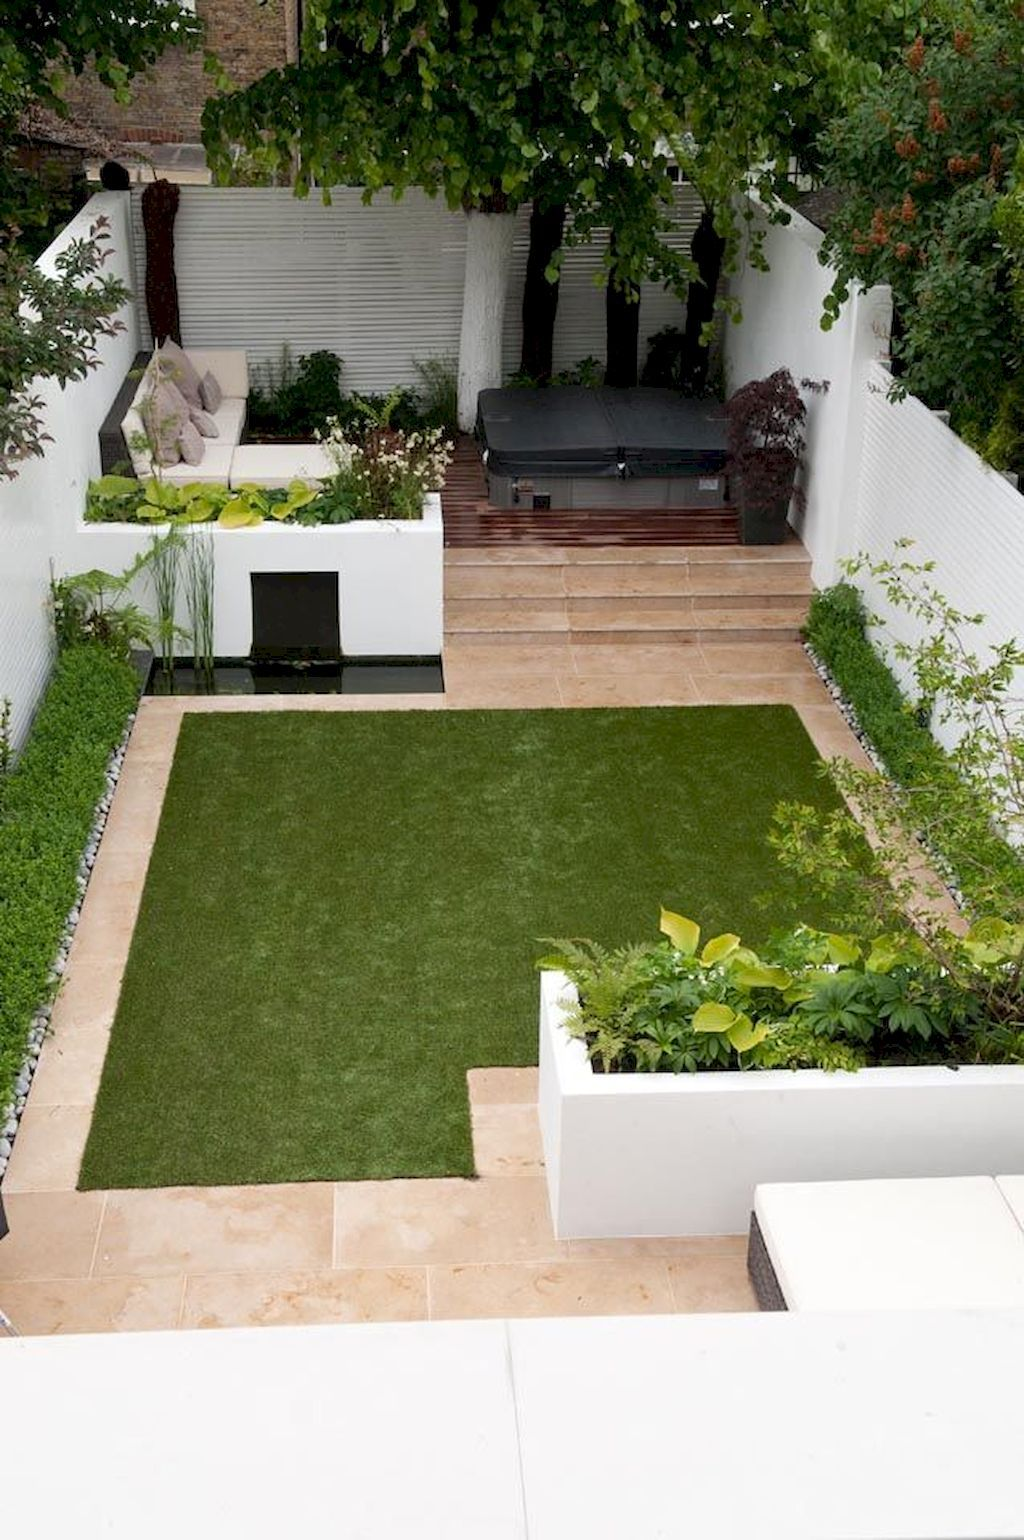 Idee Deco Petit Jardin 60 amazing small backyard ideas on a budget for small yards